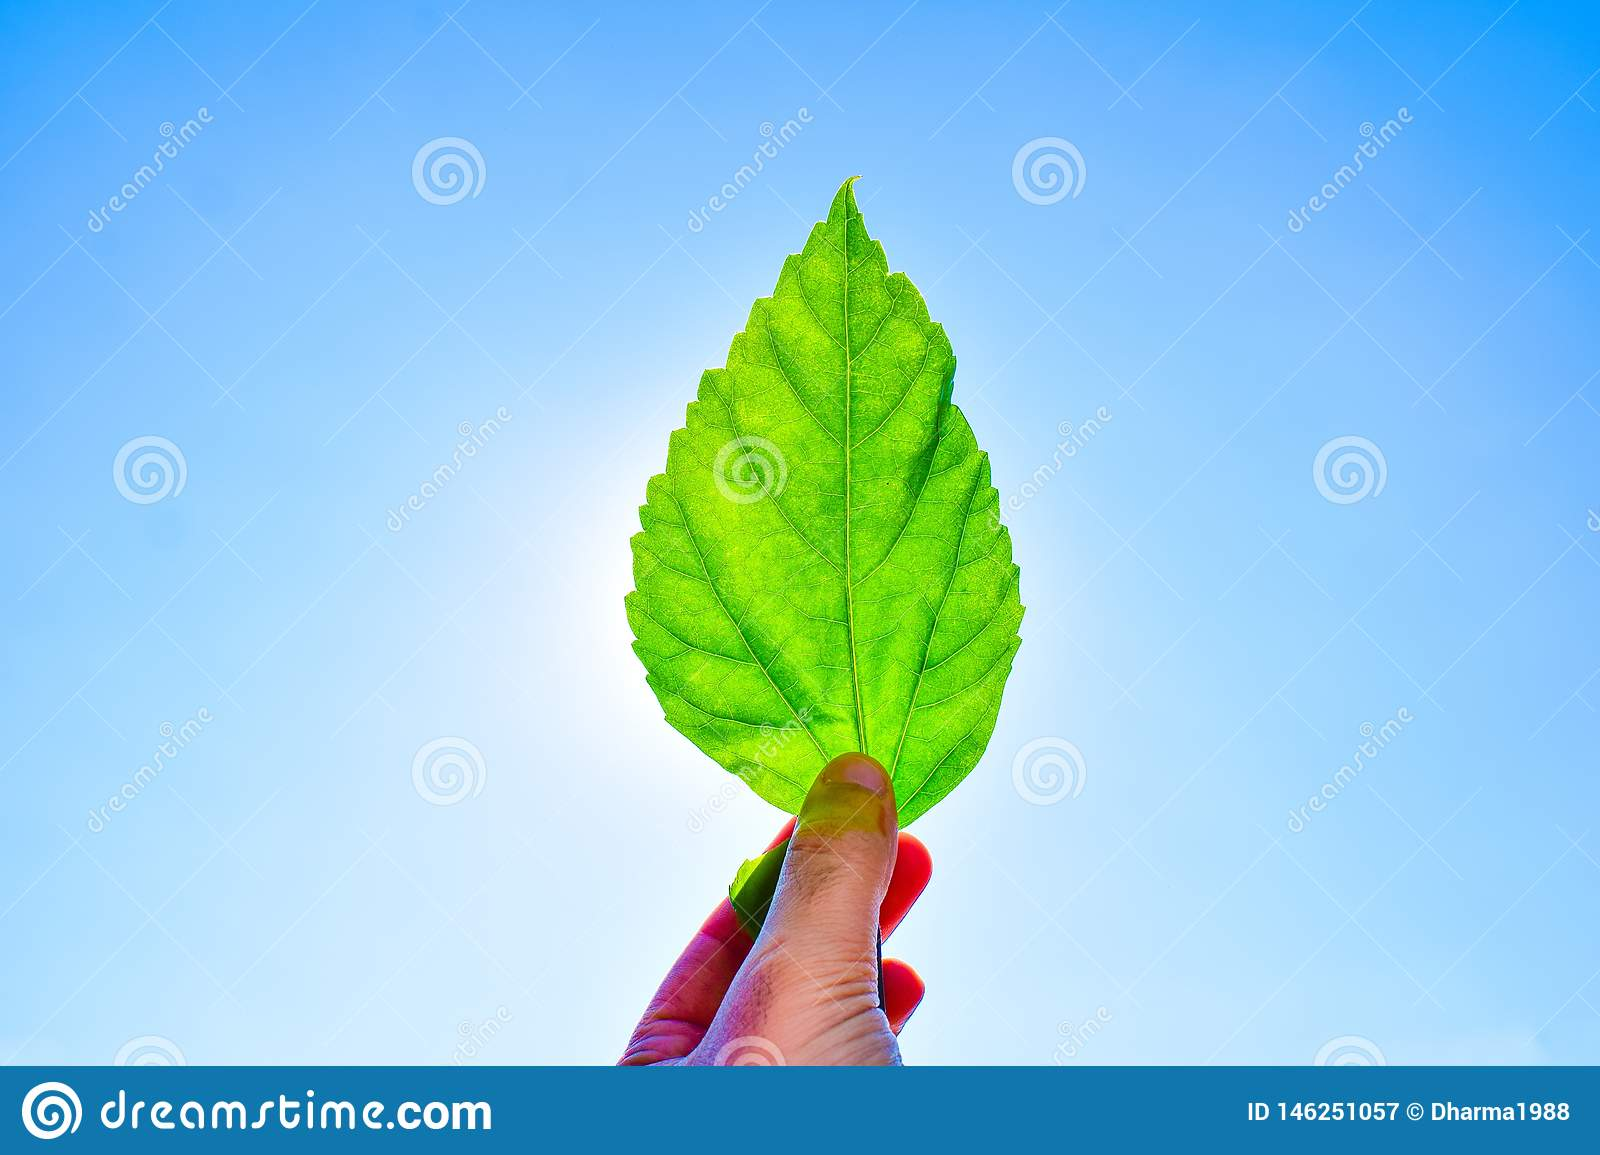 Man holding green leaf against to sun and blue sky